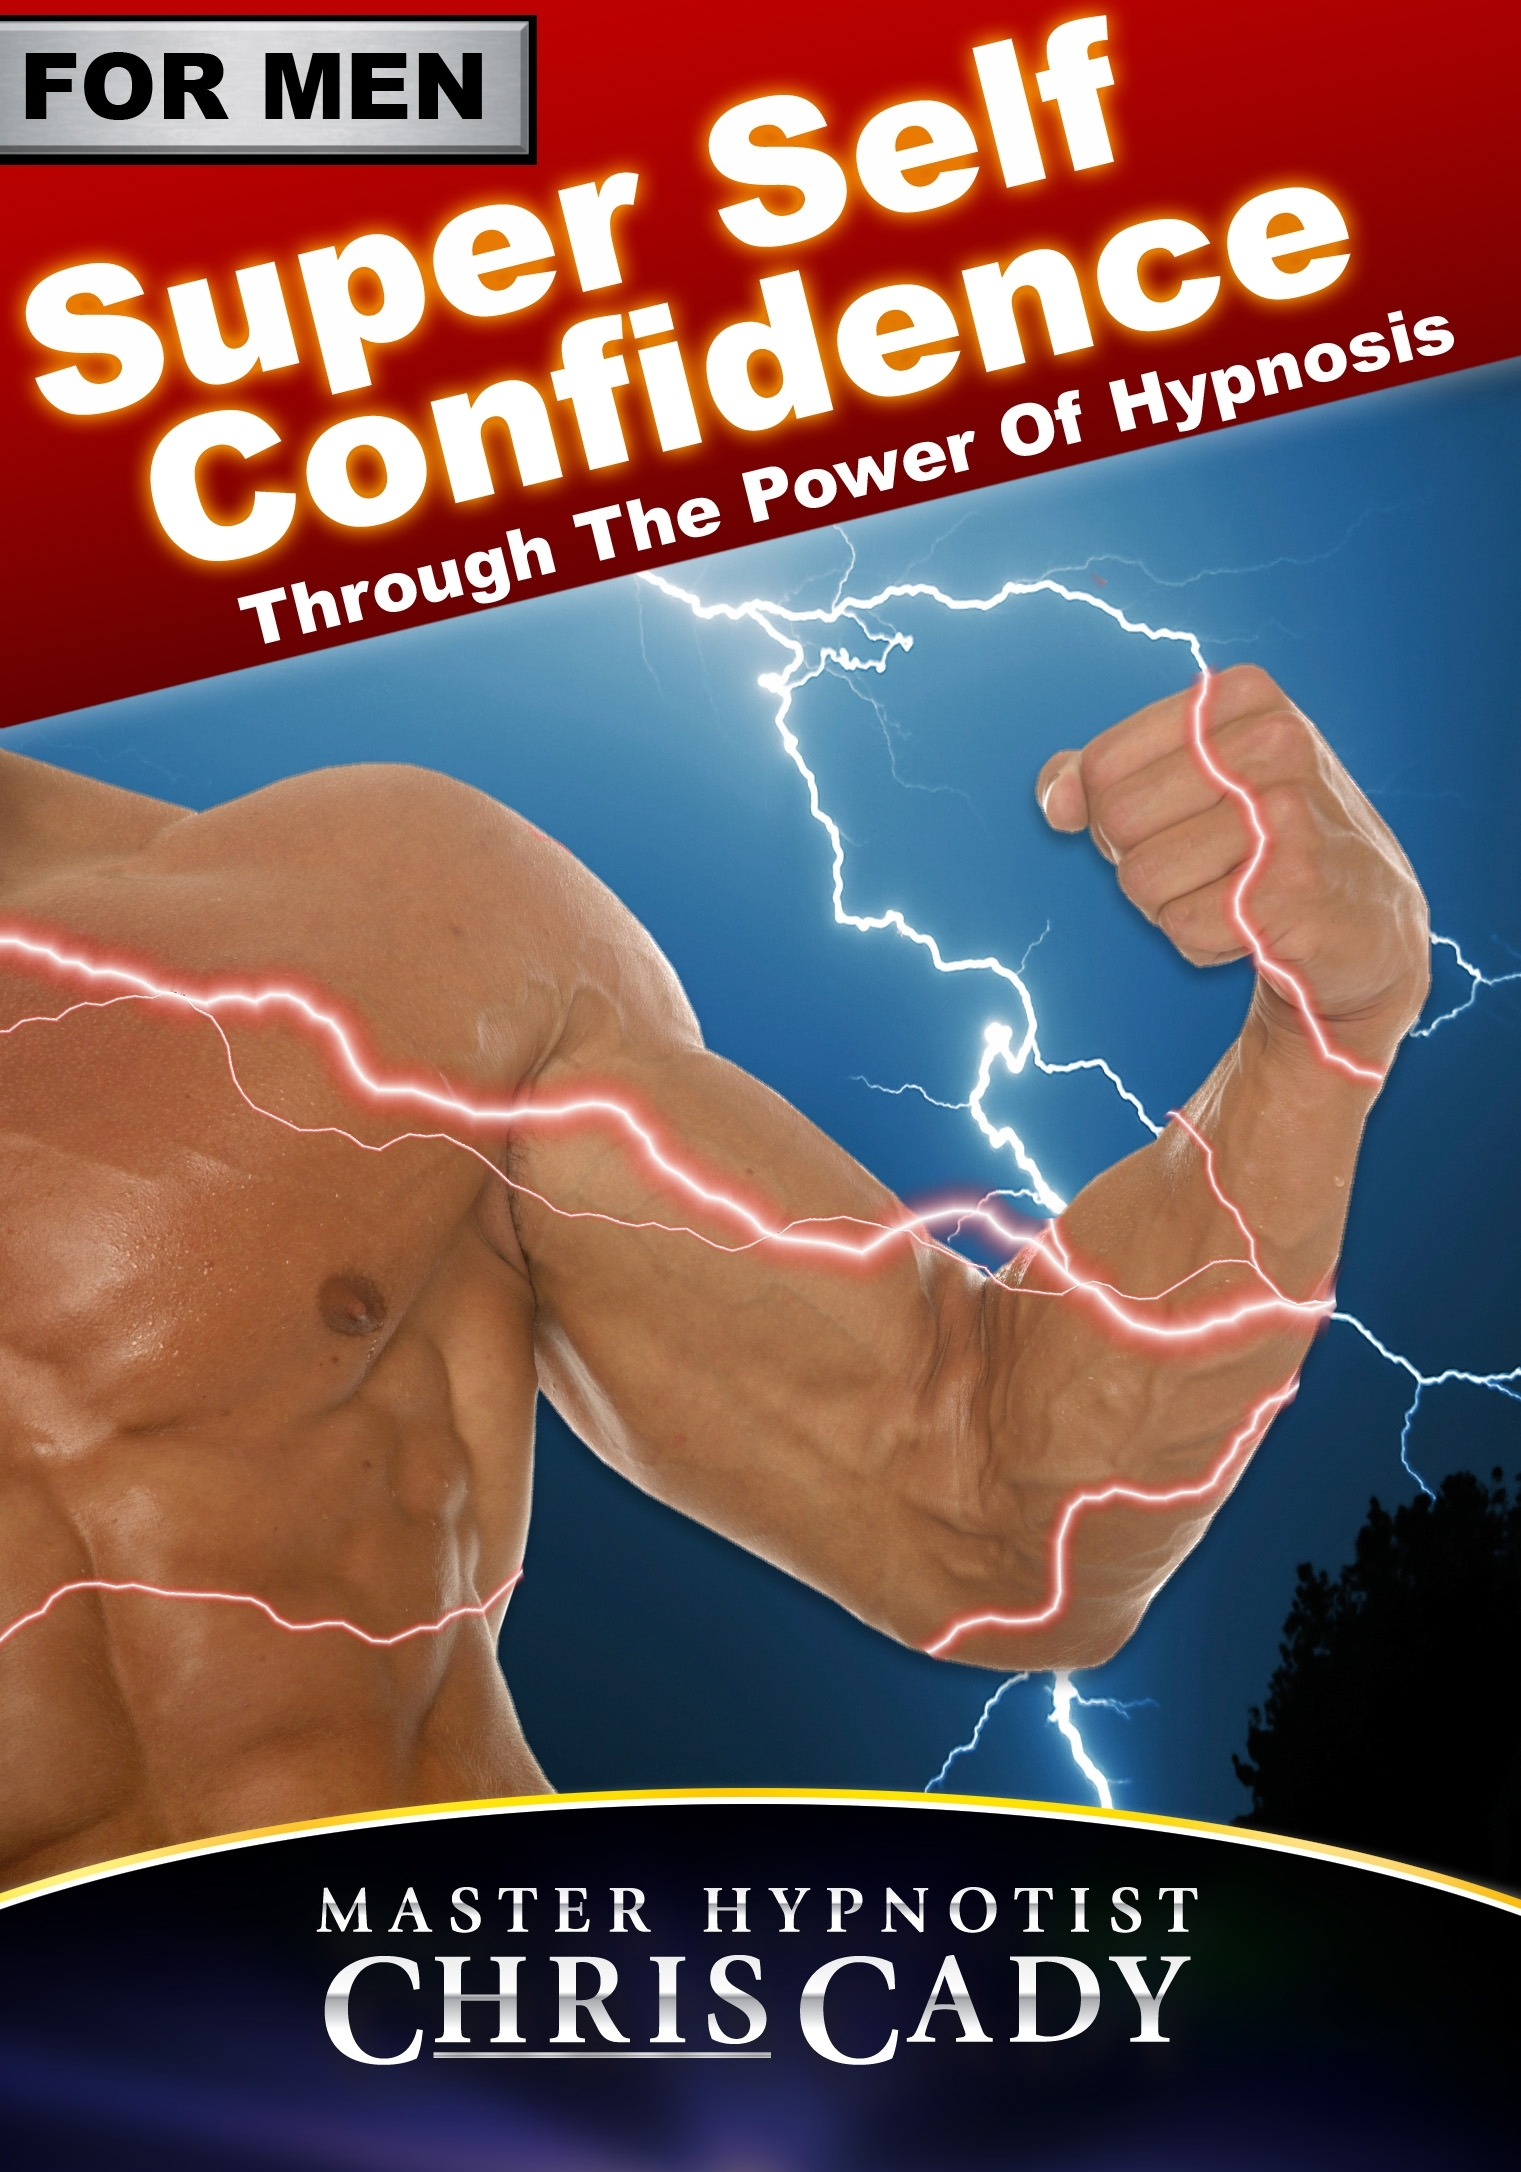 self confidence for men cd mp3 download with hypnosis